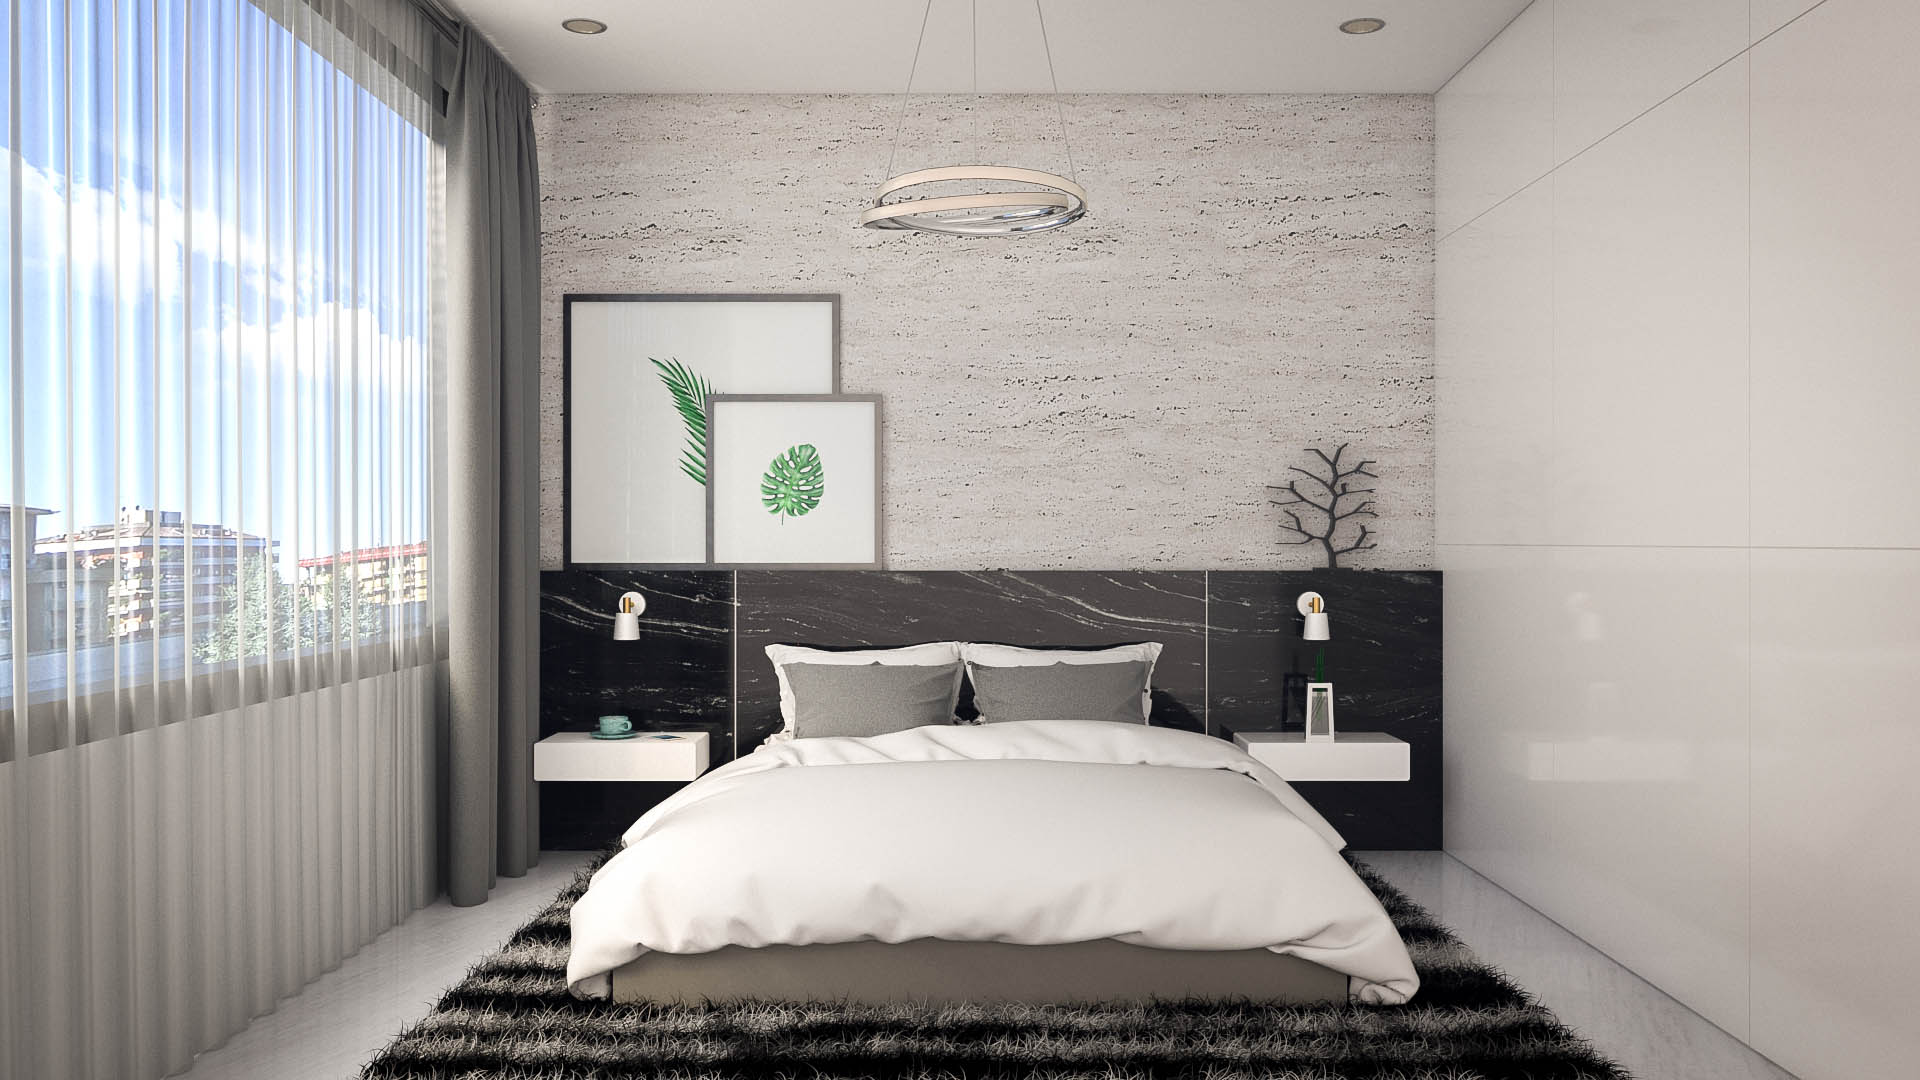 Small Modern Bedroom Design Ideas - roomdsign.com on Bedroom Design Minimalist  id=60198